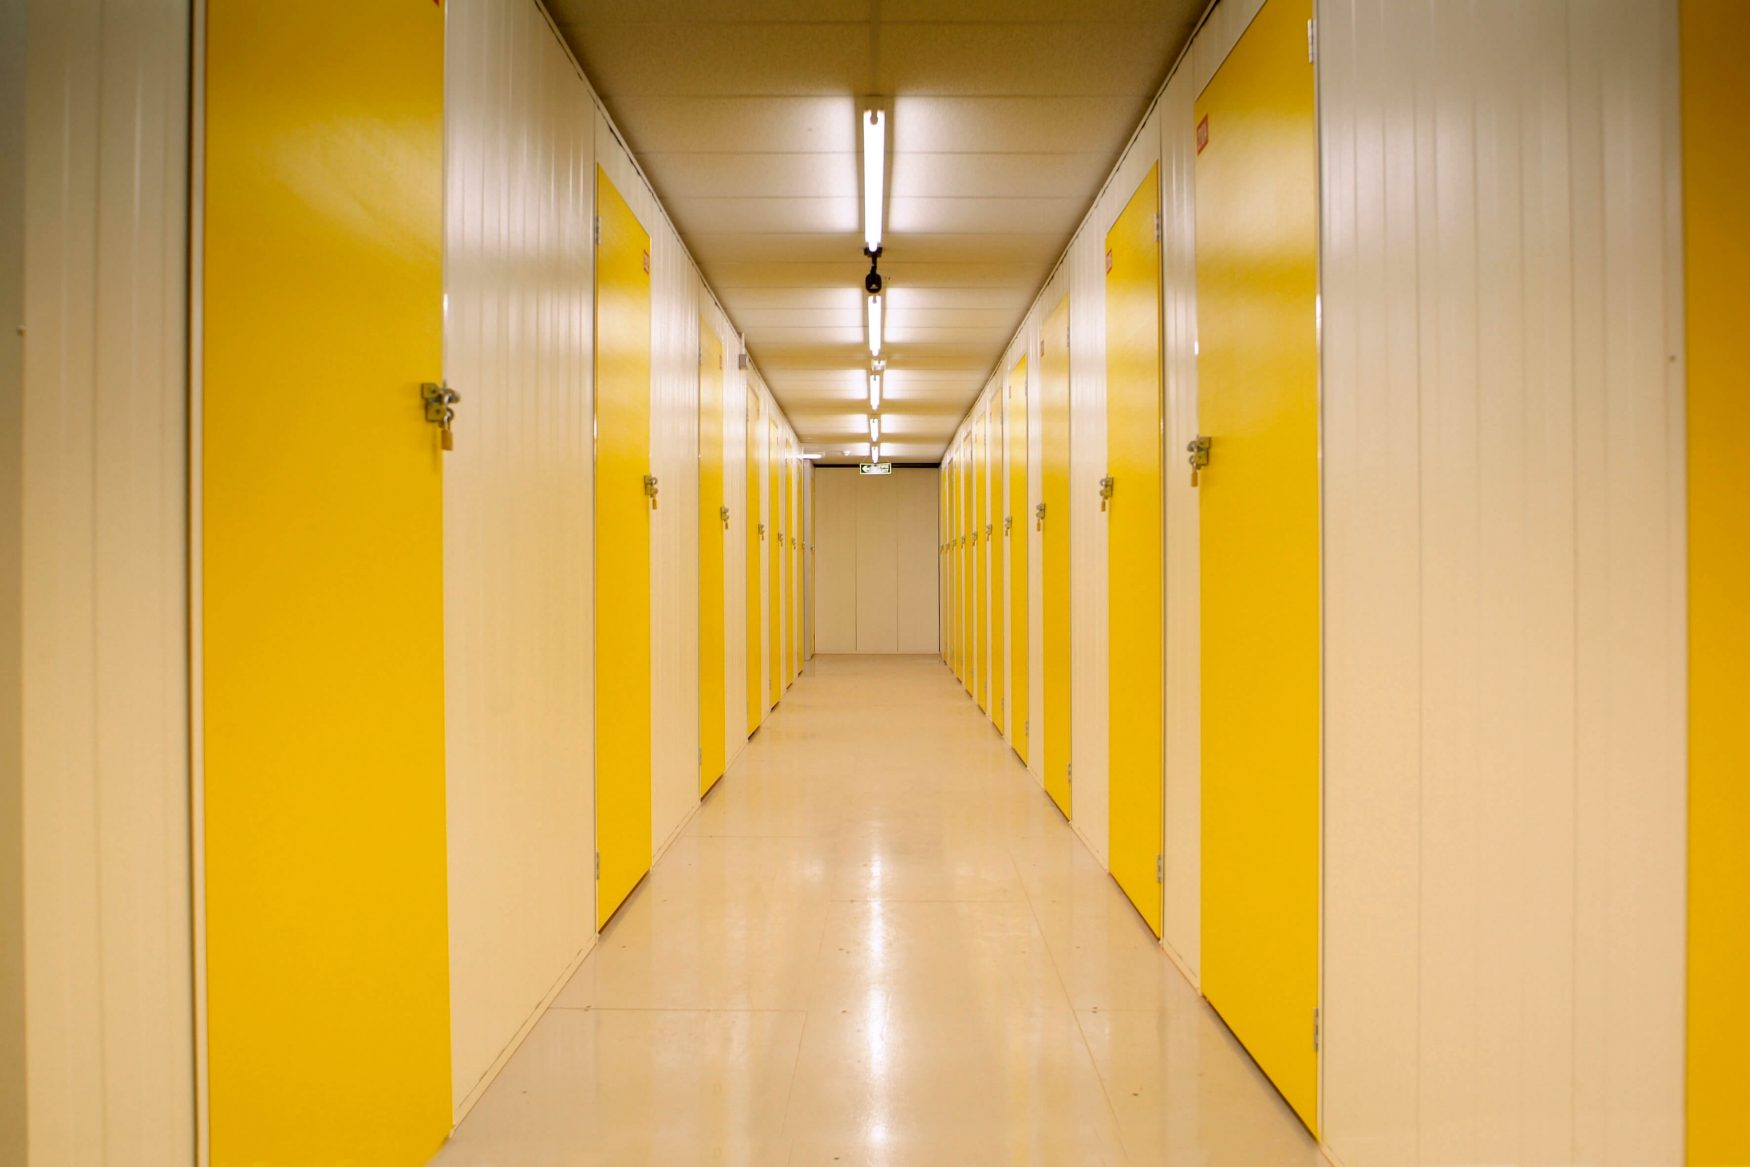 How Much Does it Cost? Our Self Storage Prices | Go Store